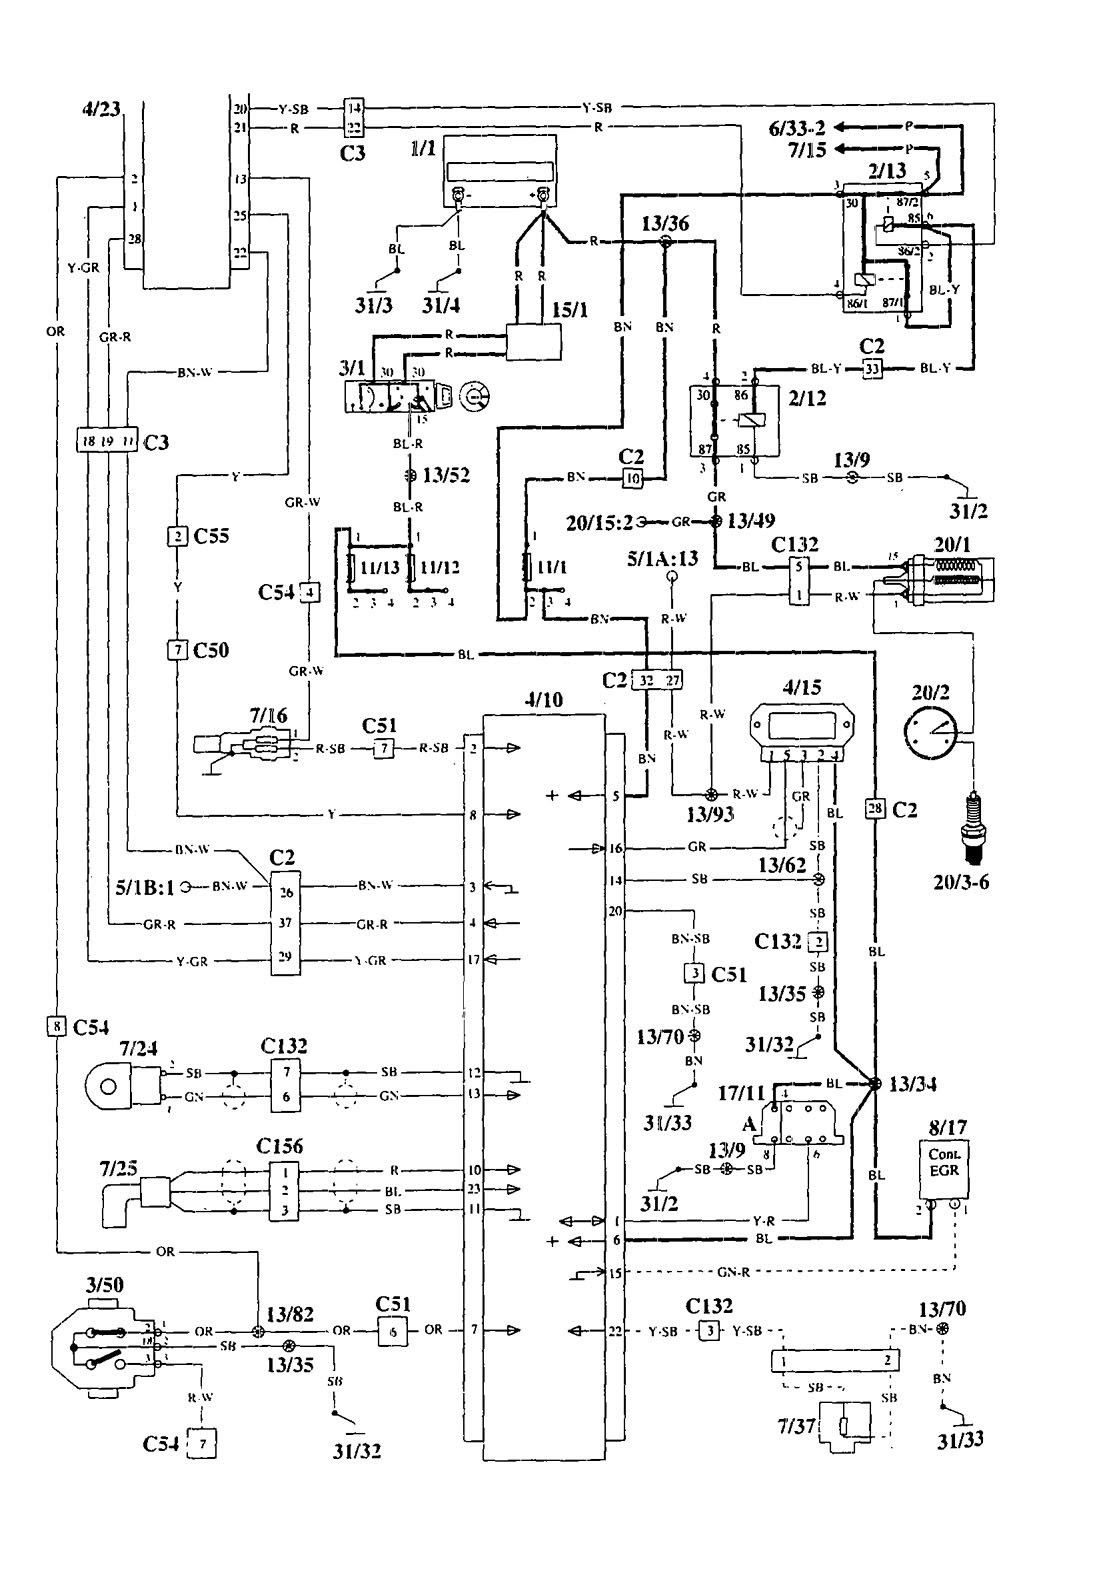 1961 Cadillac Ignition Wiring 2011 Chevrolet Hhr Fuse Diagram Begeboy Wiring Diagram Source